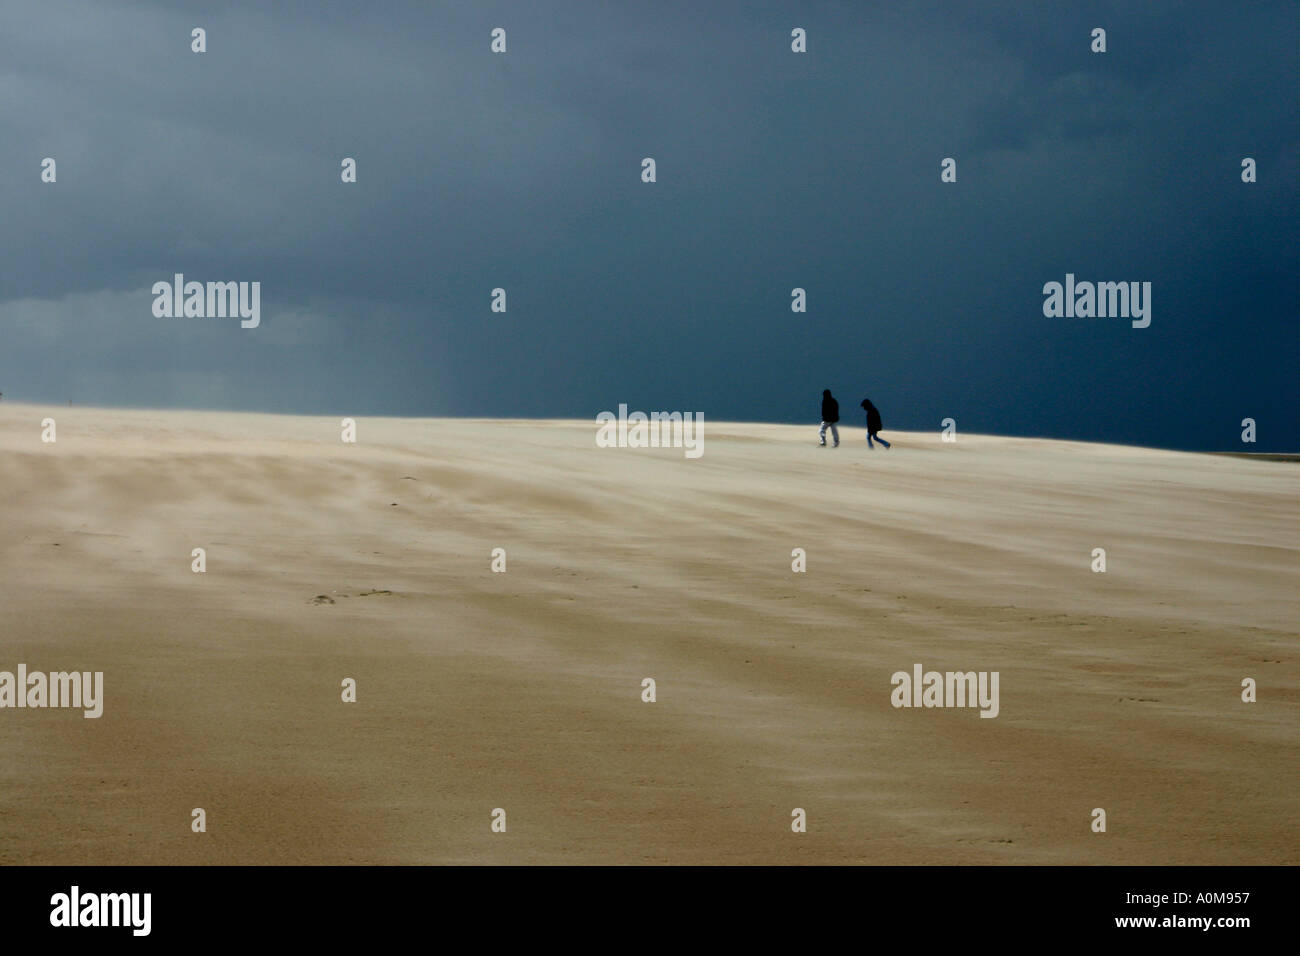 Figures on a Beach - Stock Image